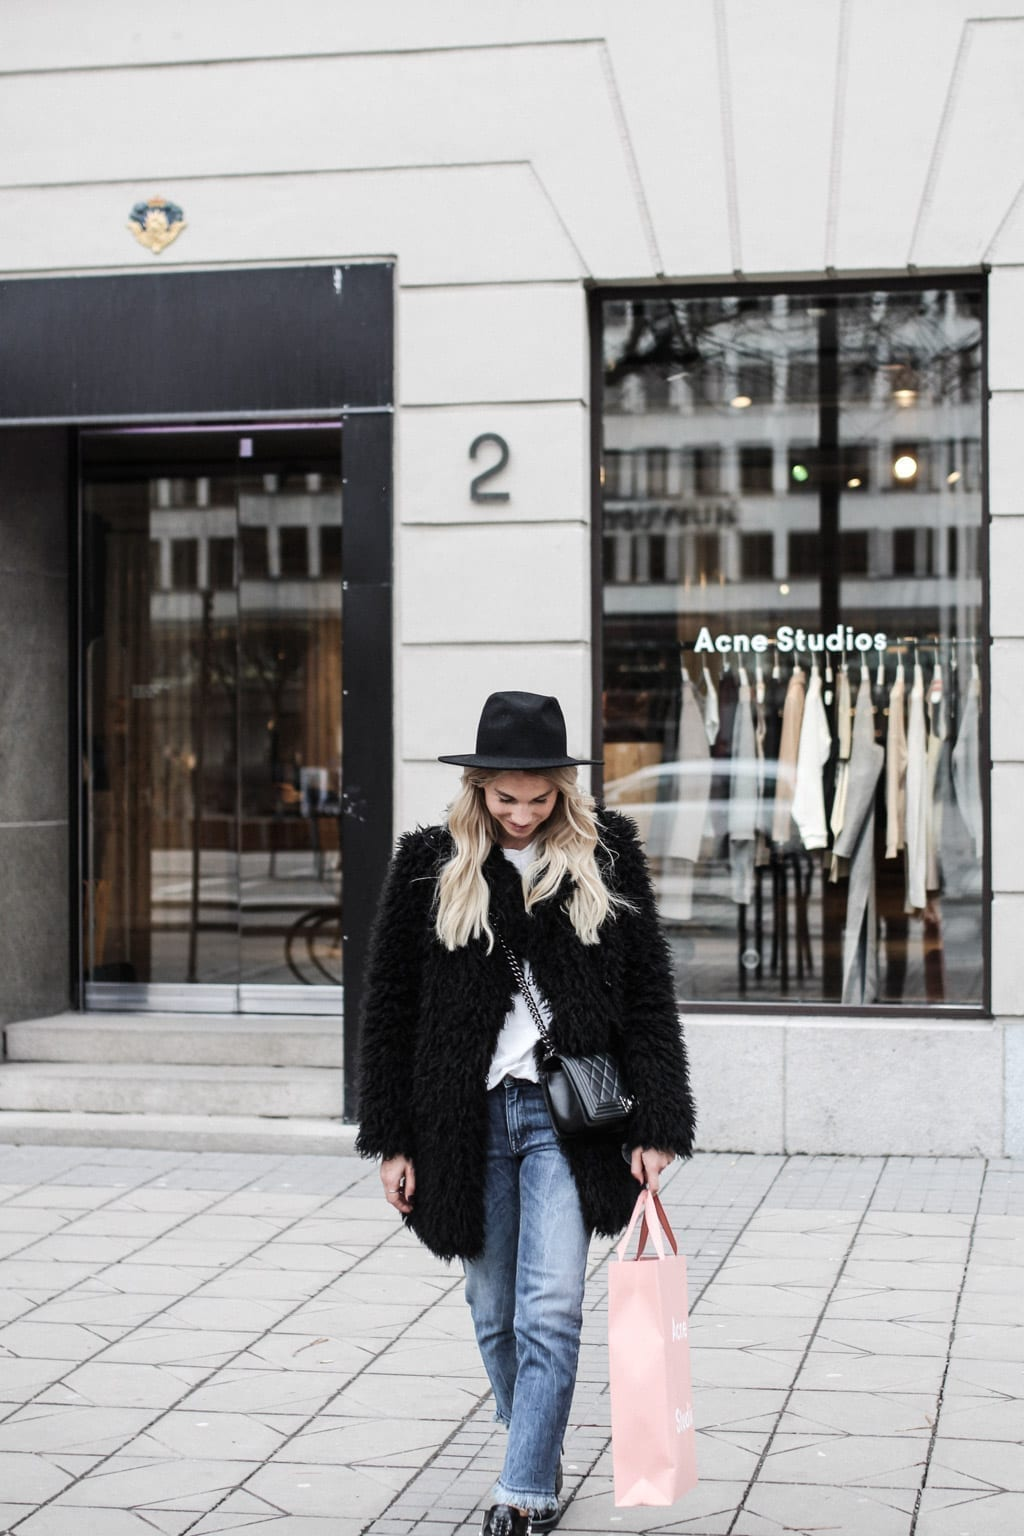 CK1603_Constantly-K-Karin-Kaswurm-Stockholm-Street-Style-Fashion-Acne-Nobis-9402